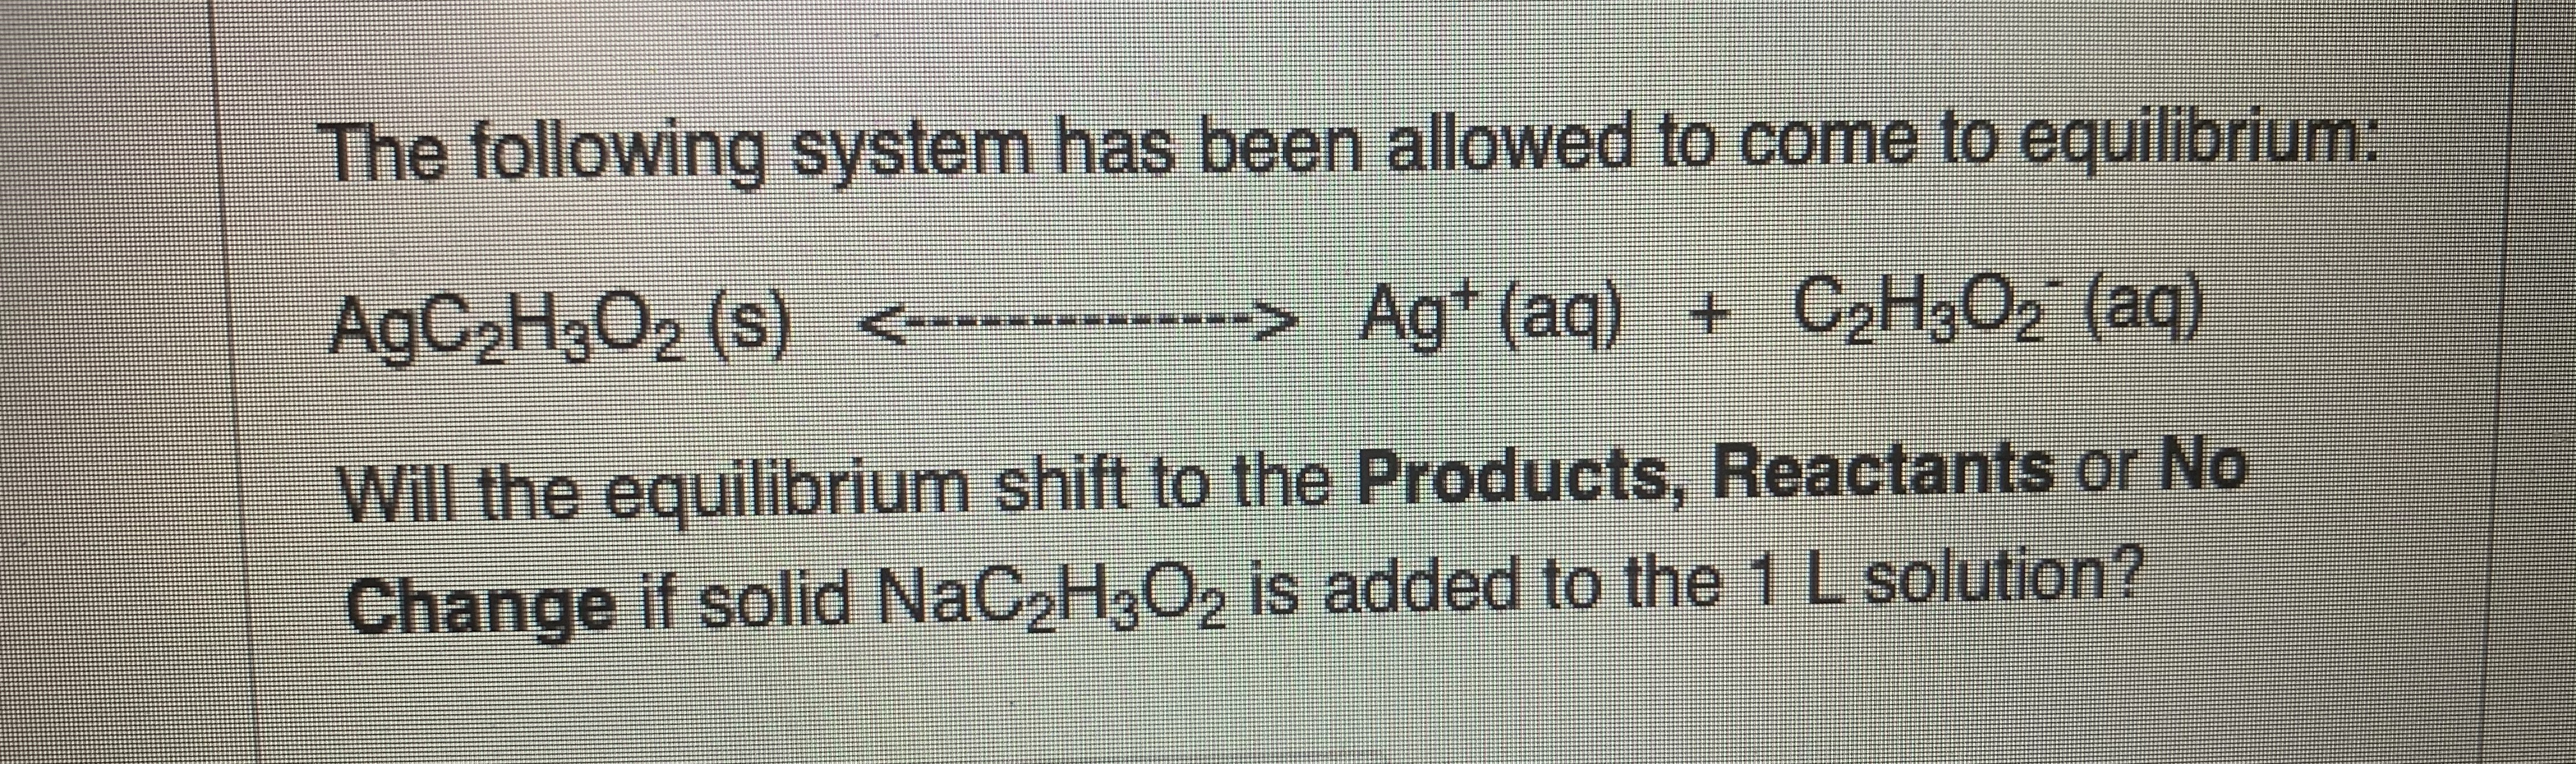 Will The Equilibrium Shift To The Products Reactants Or